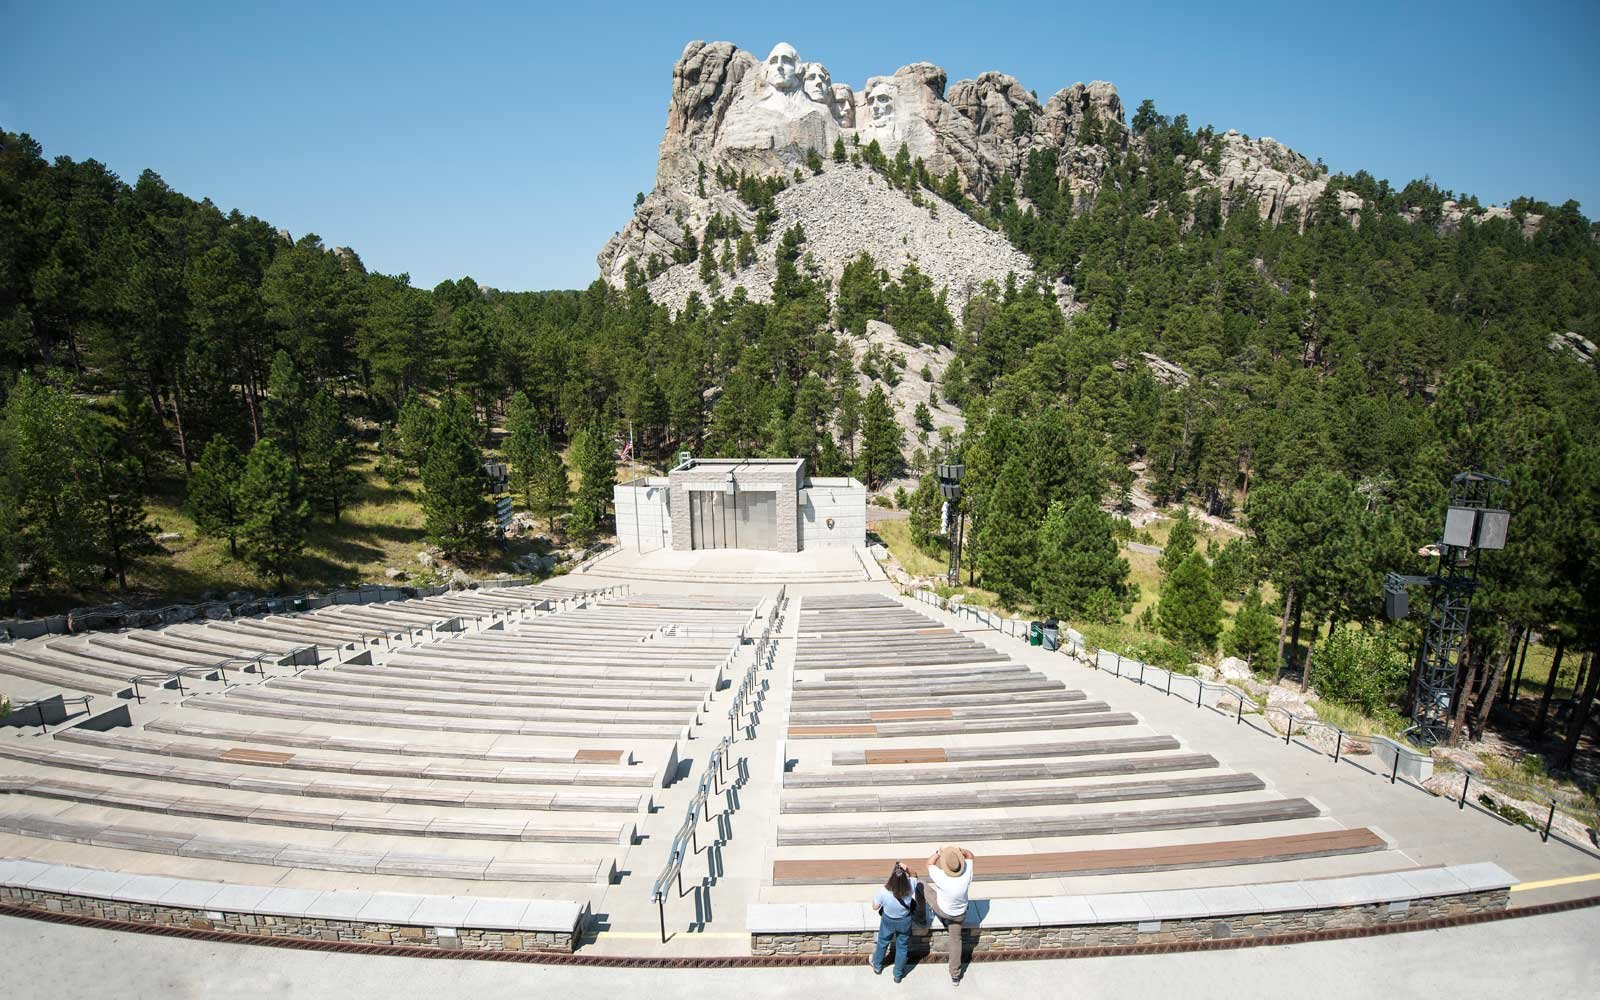 Tourists watching Mount Rushmore National Memorial